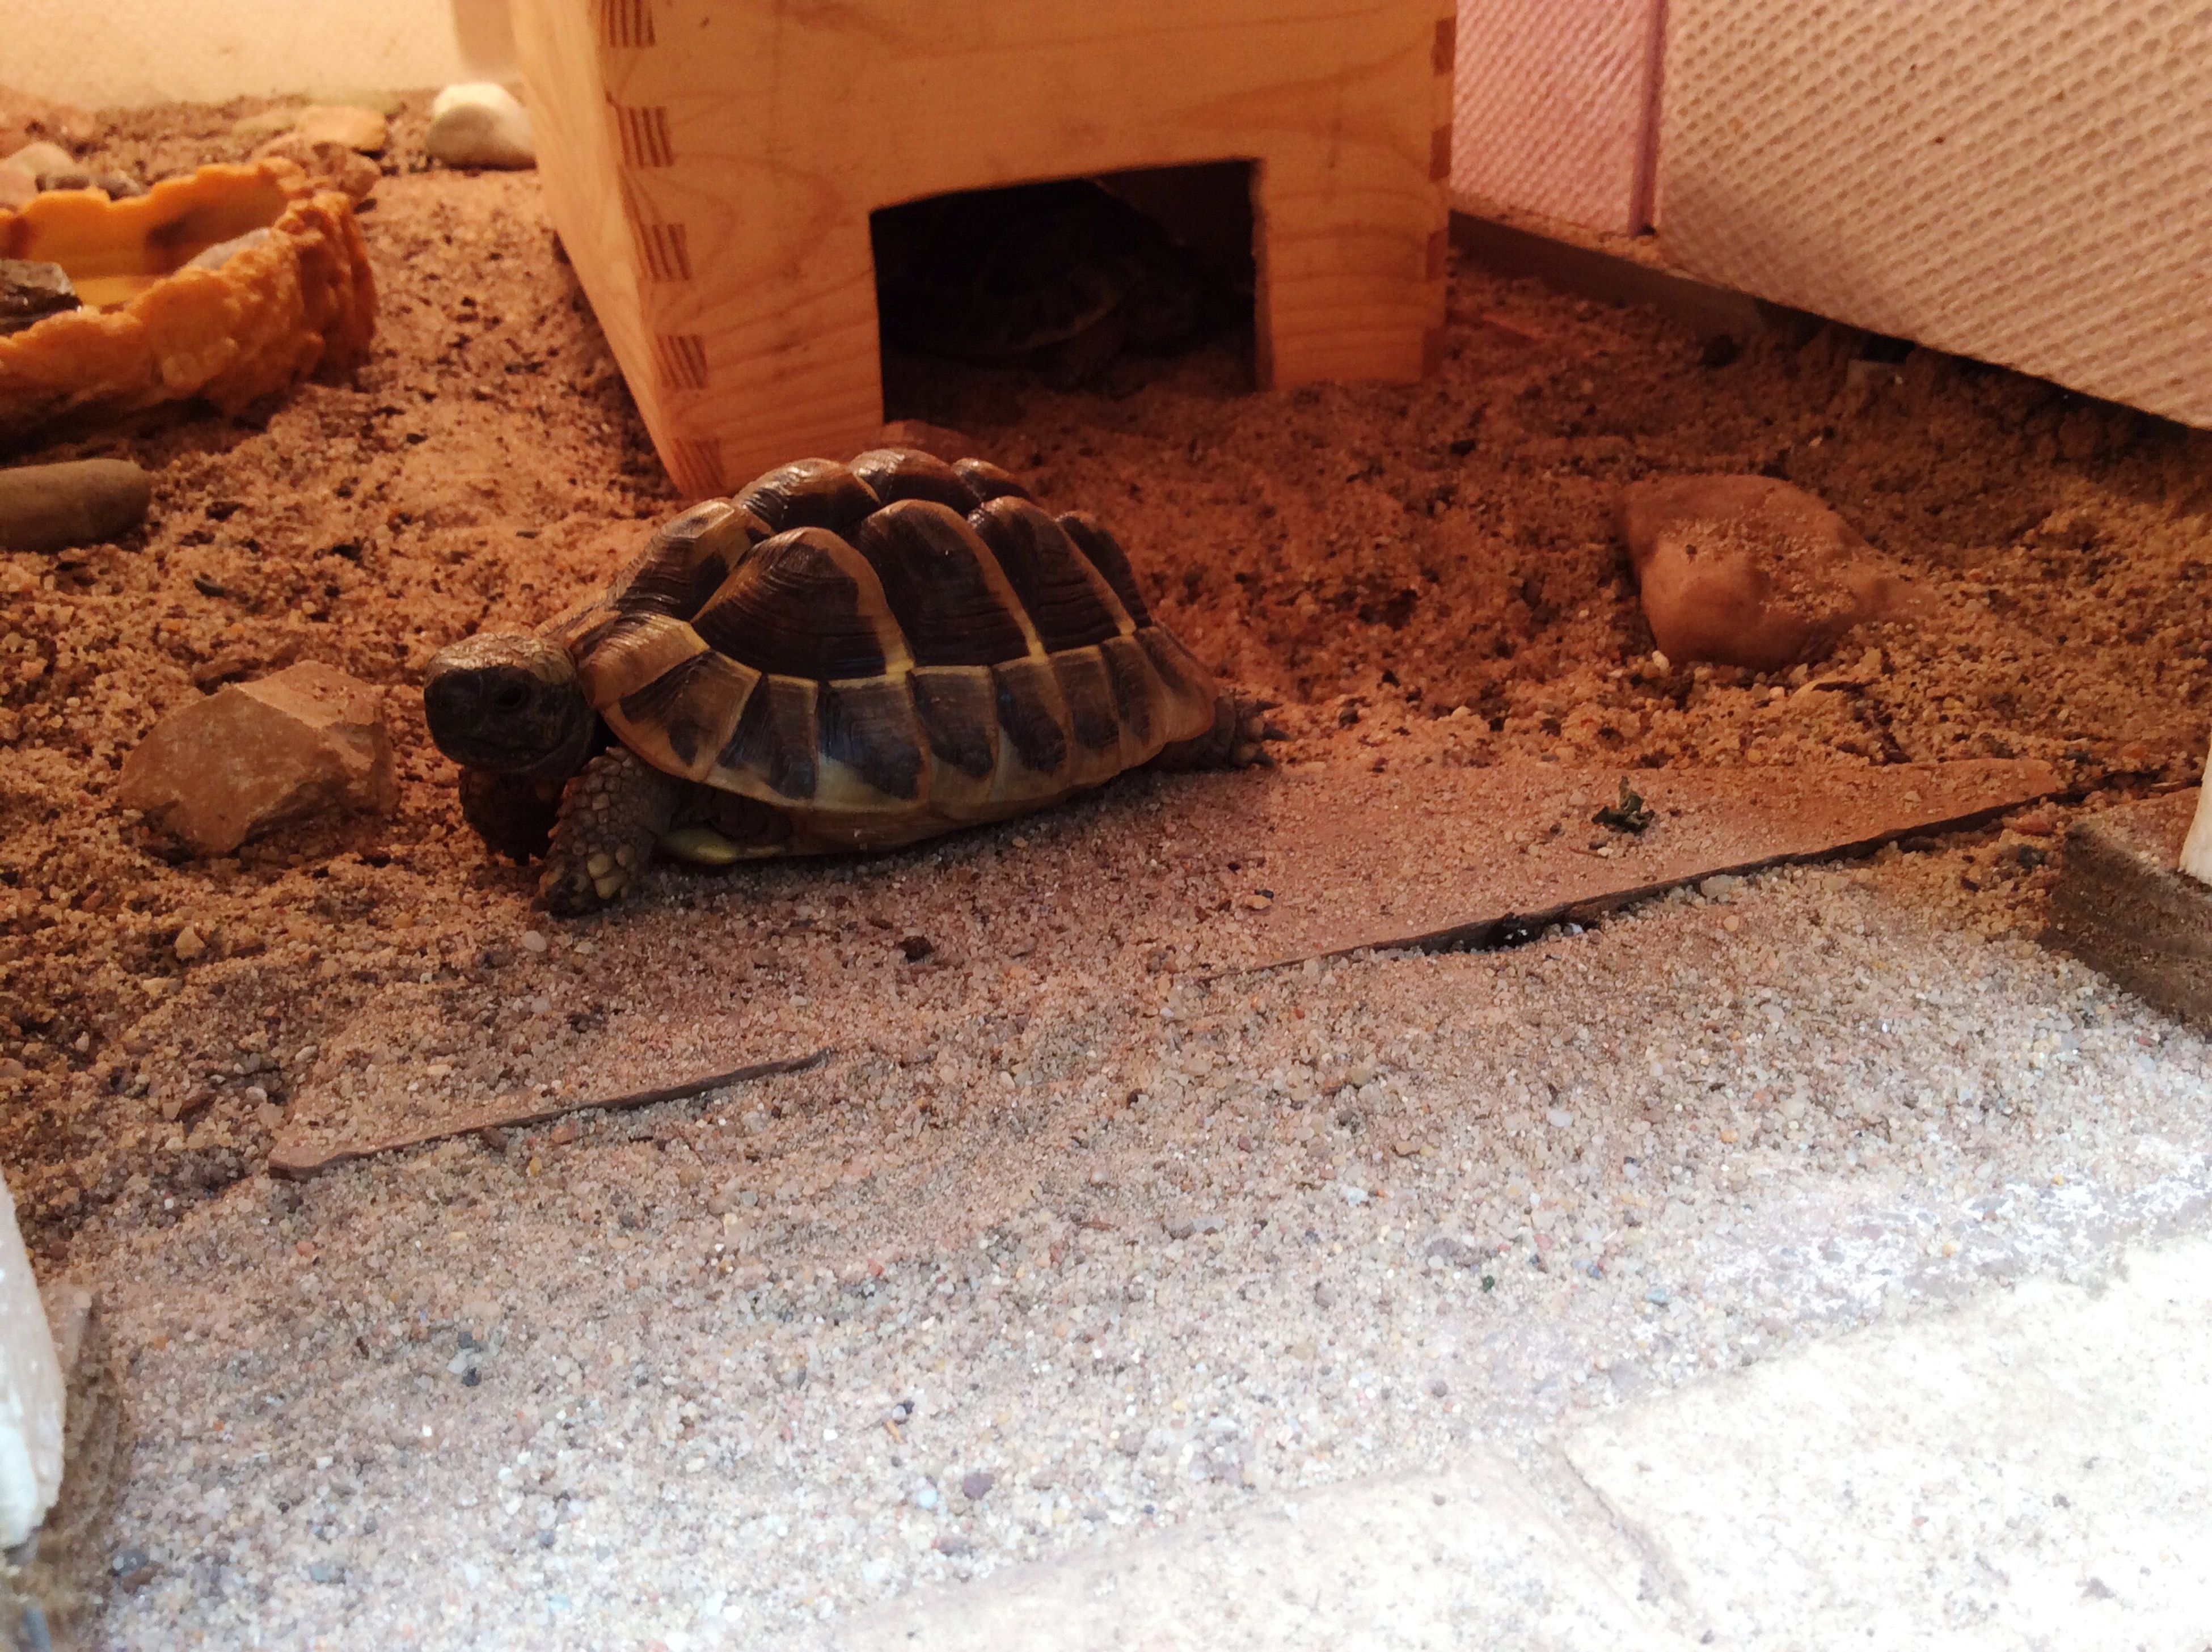 reptile, animal themes, animals in the wild, no people, tortoise shell, sand, close-up, tortoise, outdoors, day